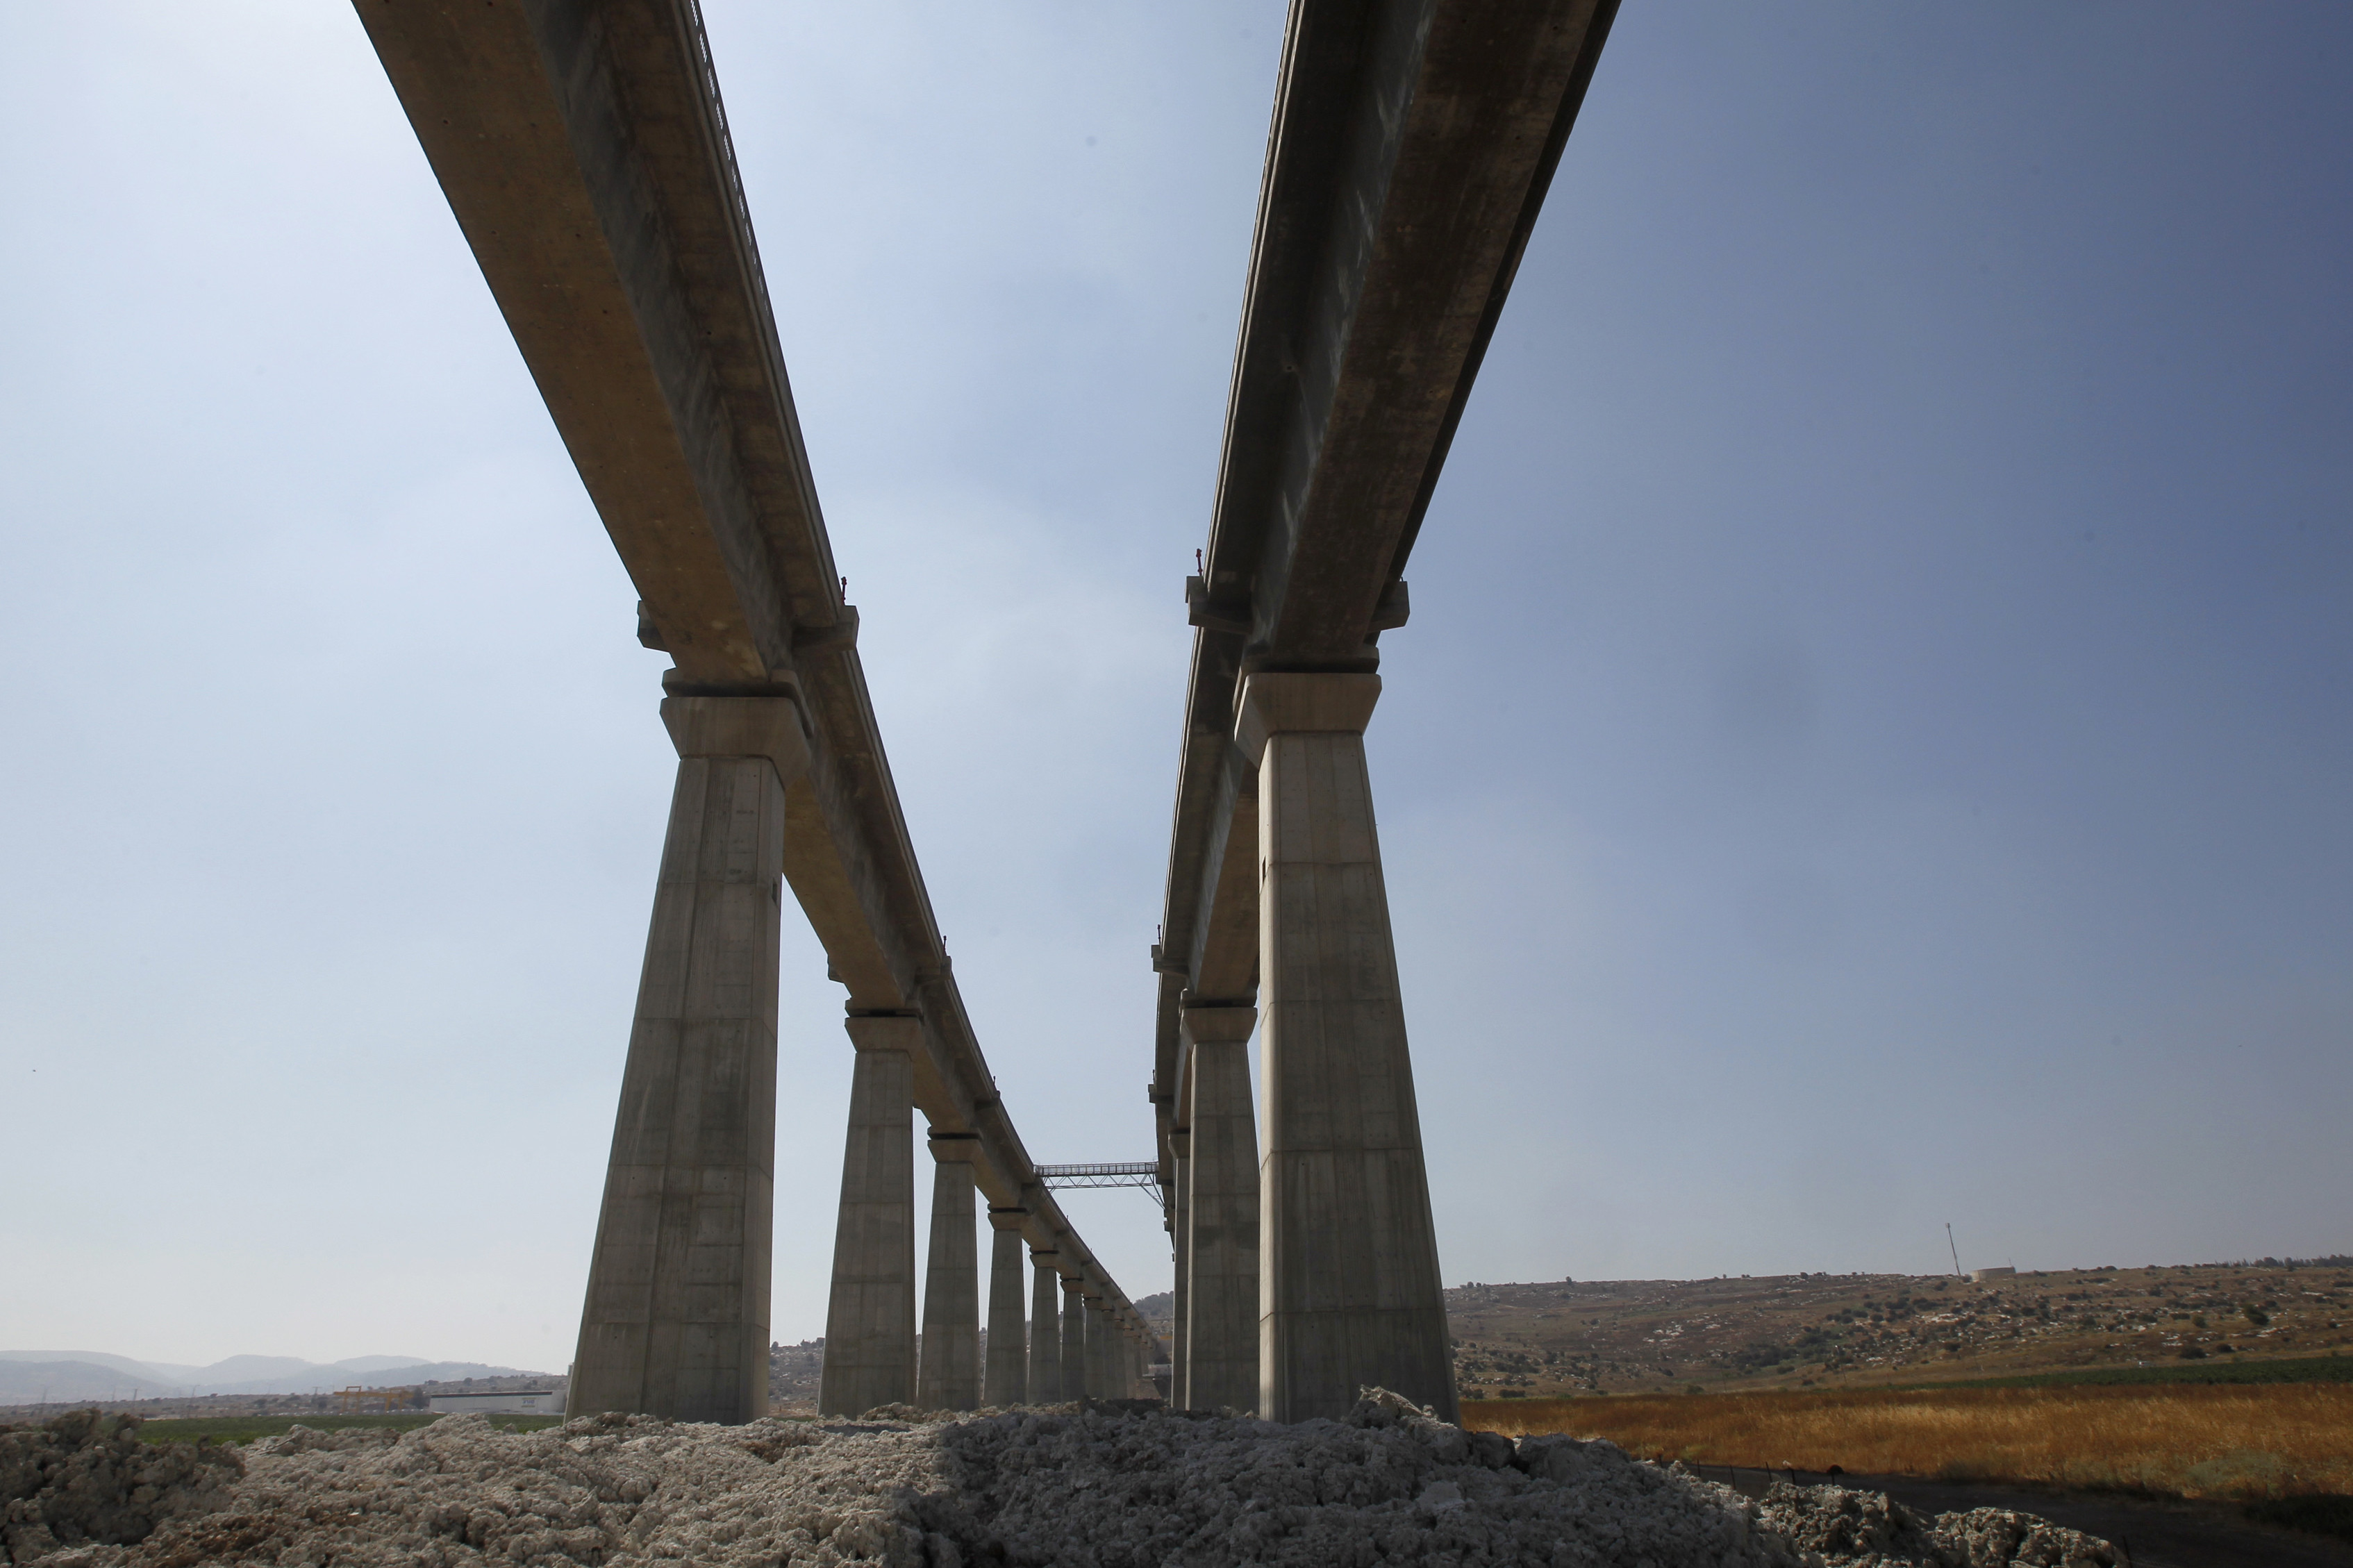 A bridge, part of Israel Railways' Jerusalem High Speed Link project, is seen near the Israeli town of Modiin July 7, 2012. (Reuters/Baz Ratner)